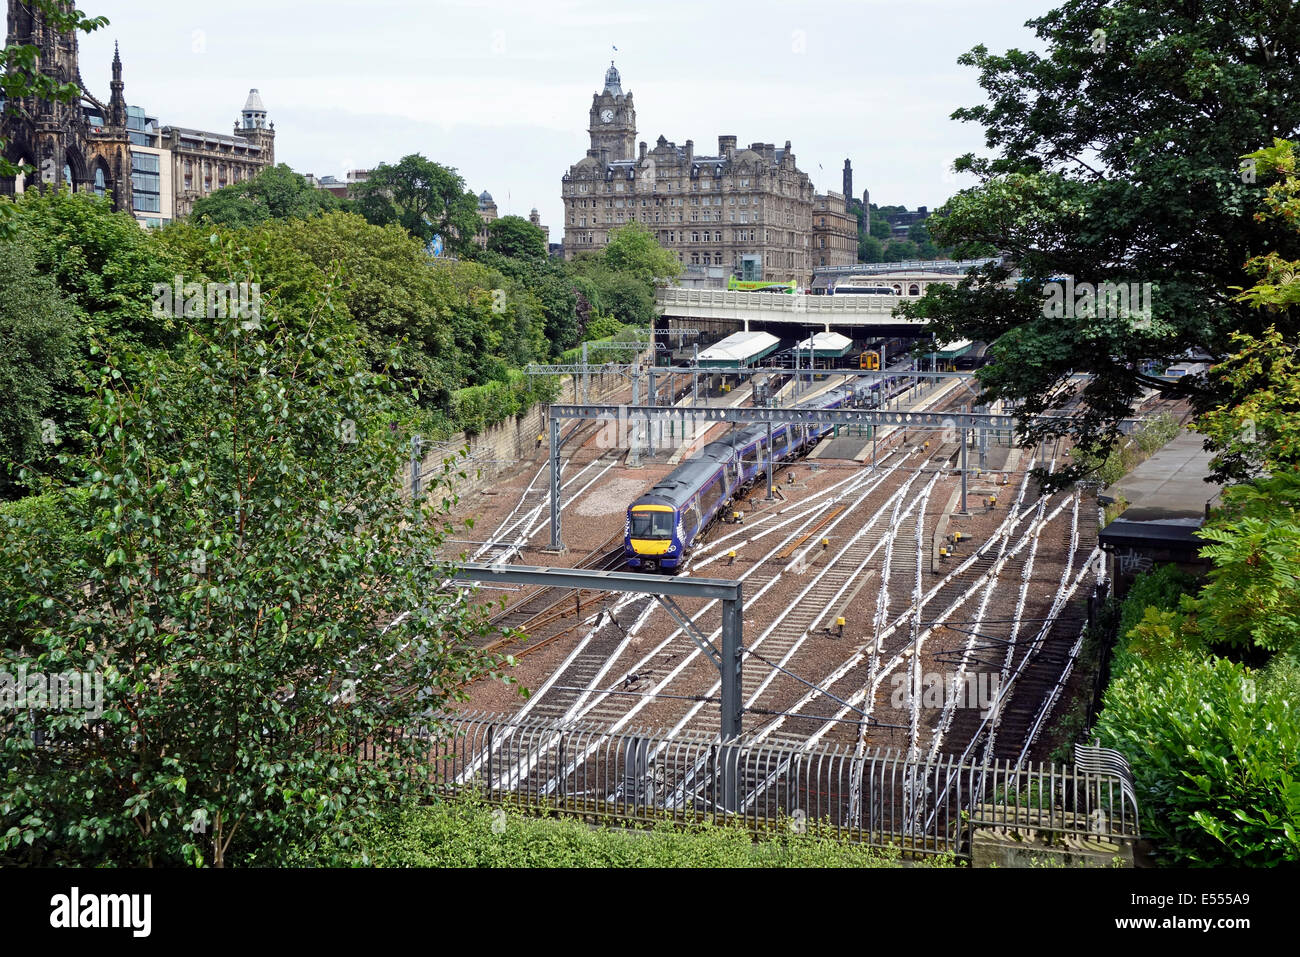 West end approach to Waverley Railway Station in Edinburgh Scotland with rails painted white - Stock Image